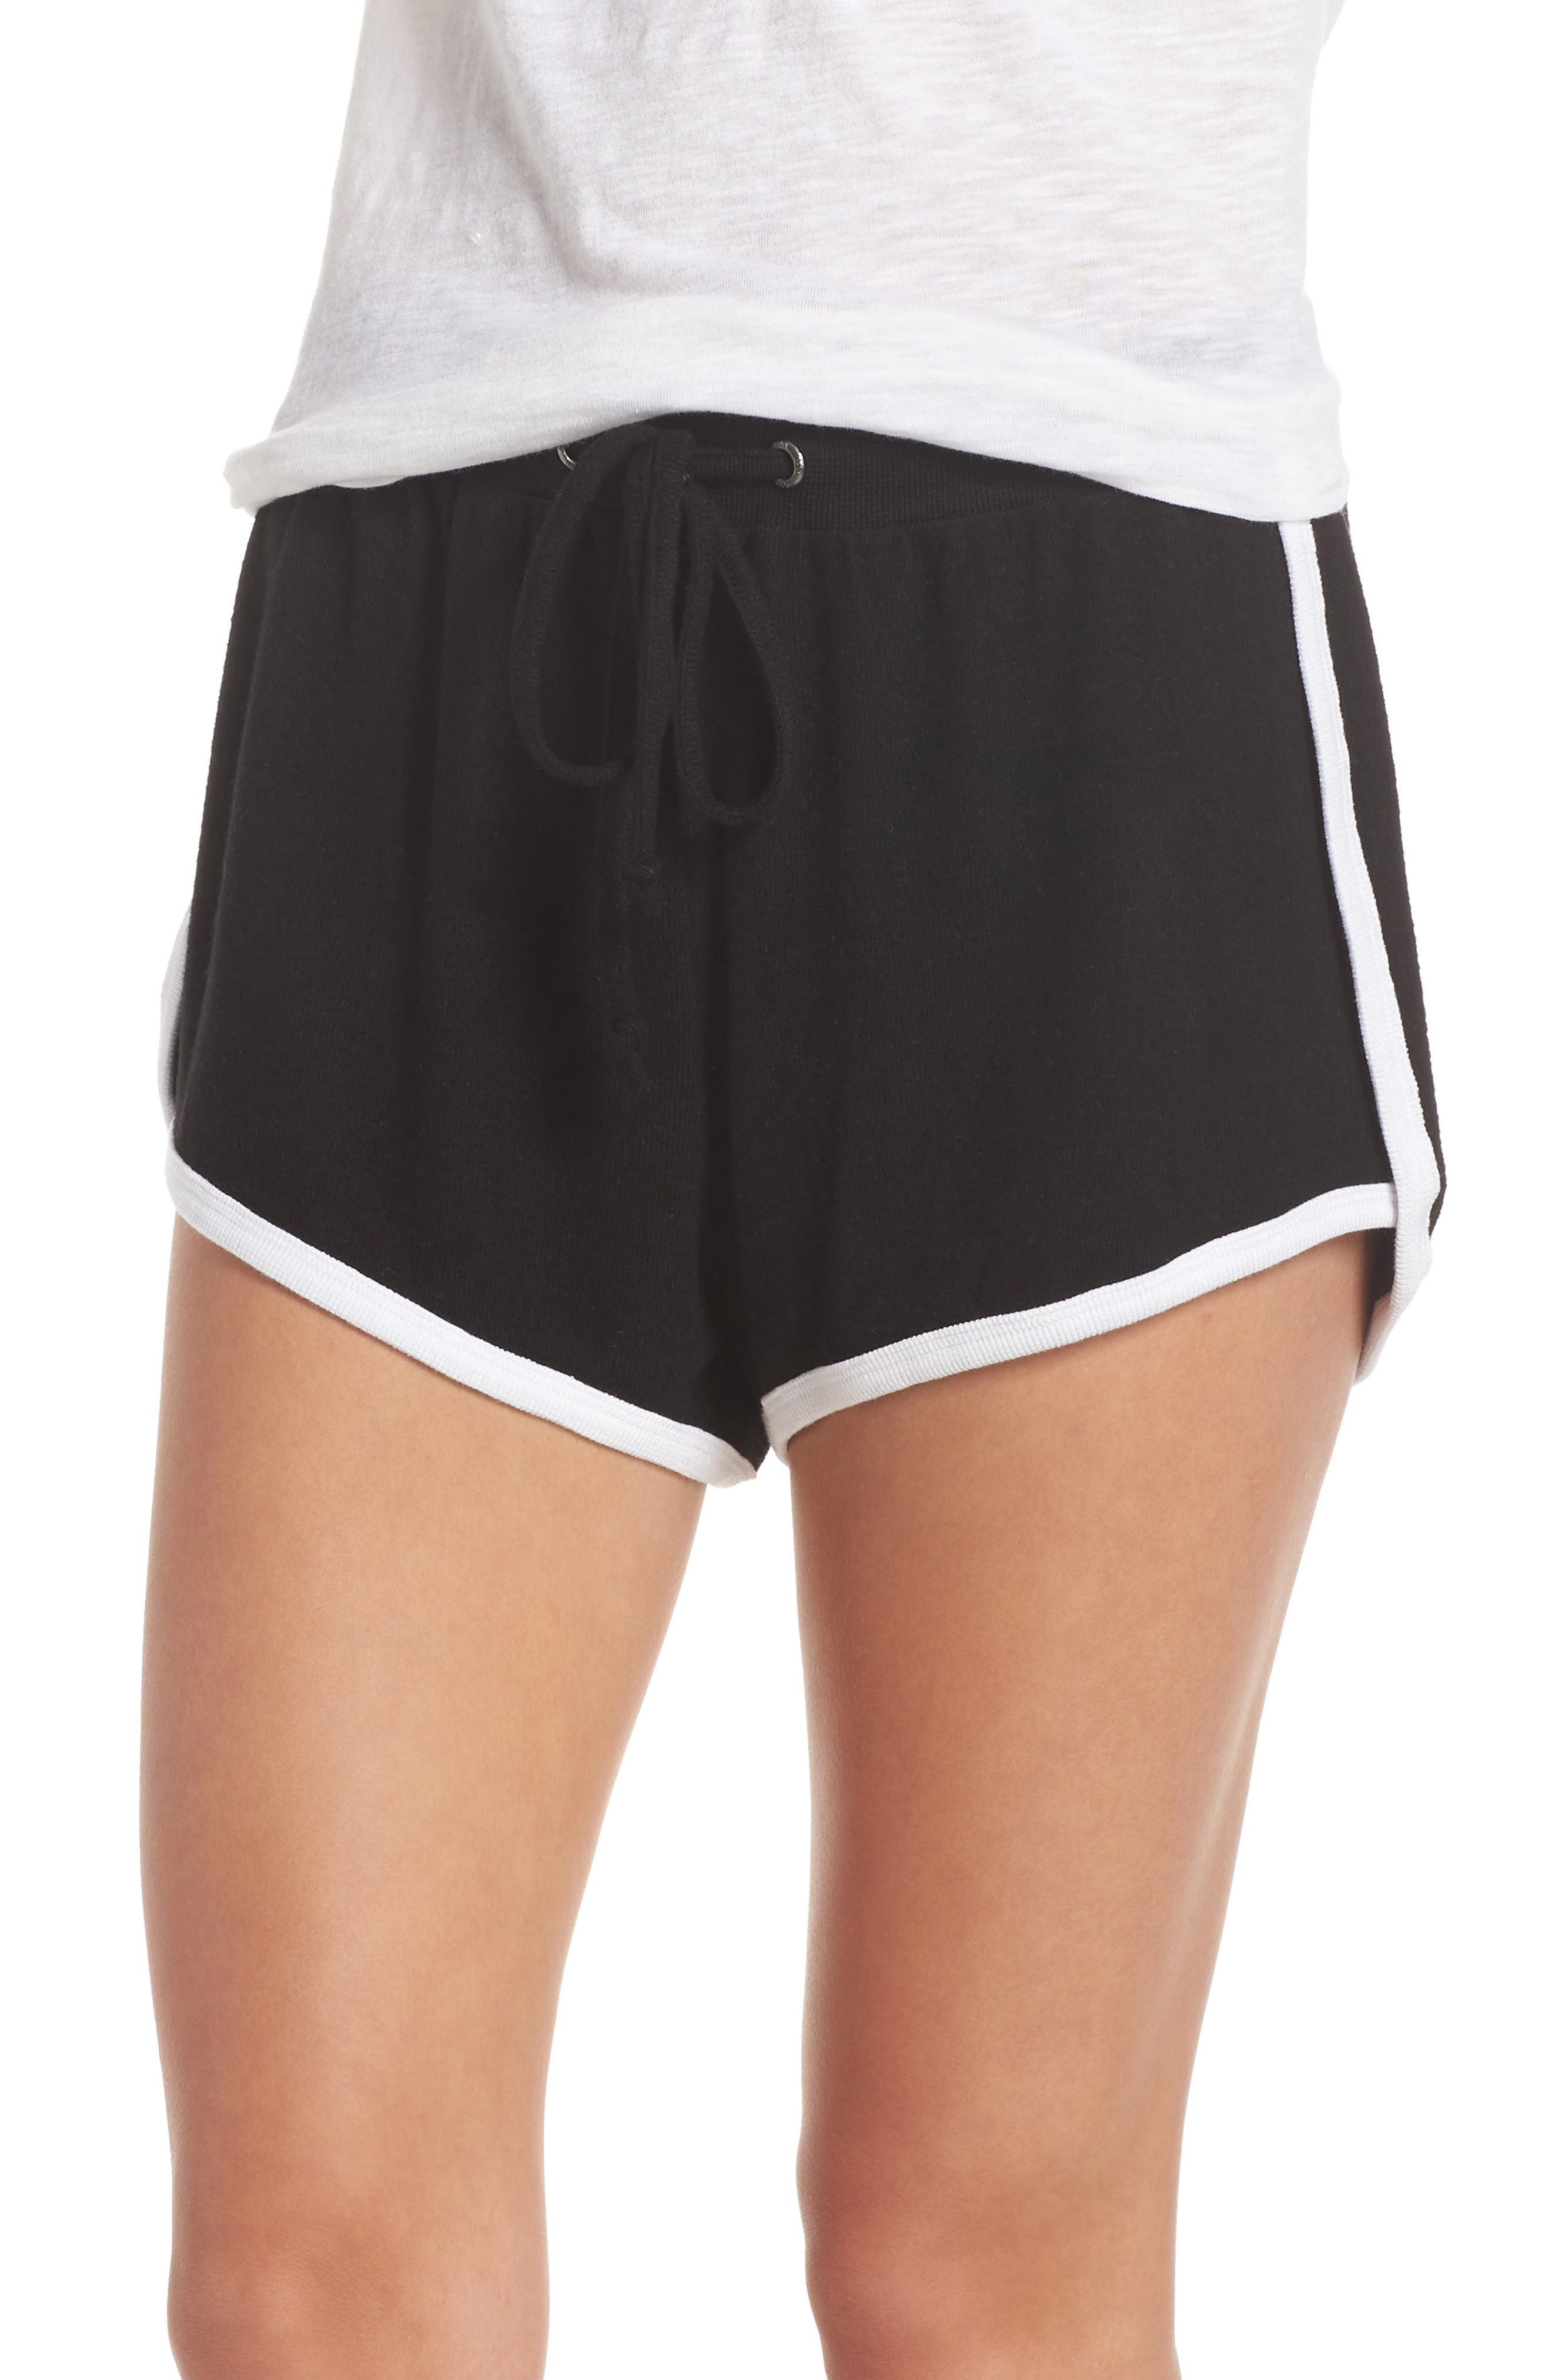 Too Cool Shorts,                         Main,                         color, 001